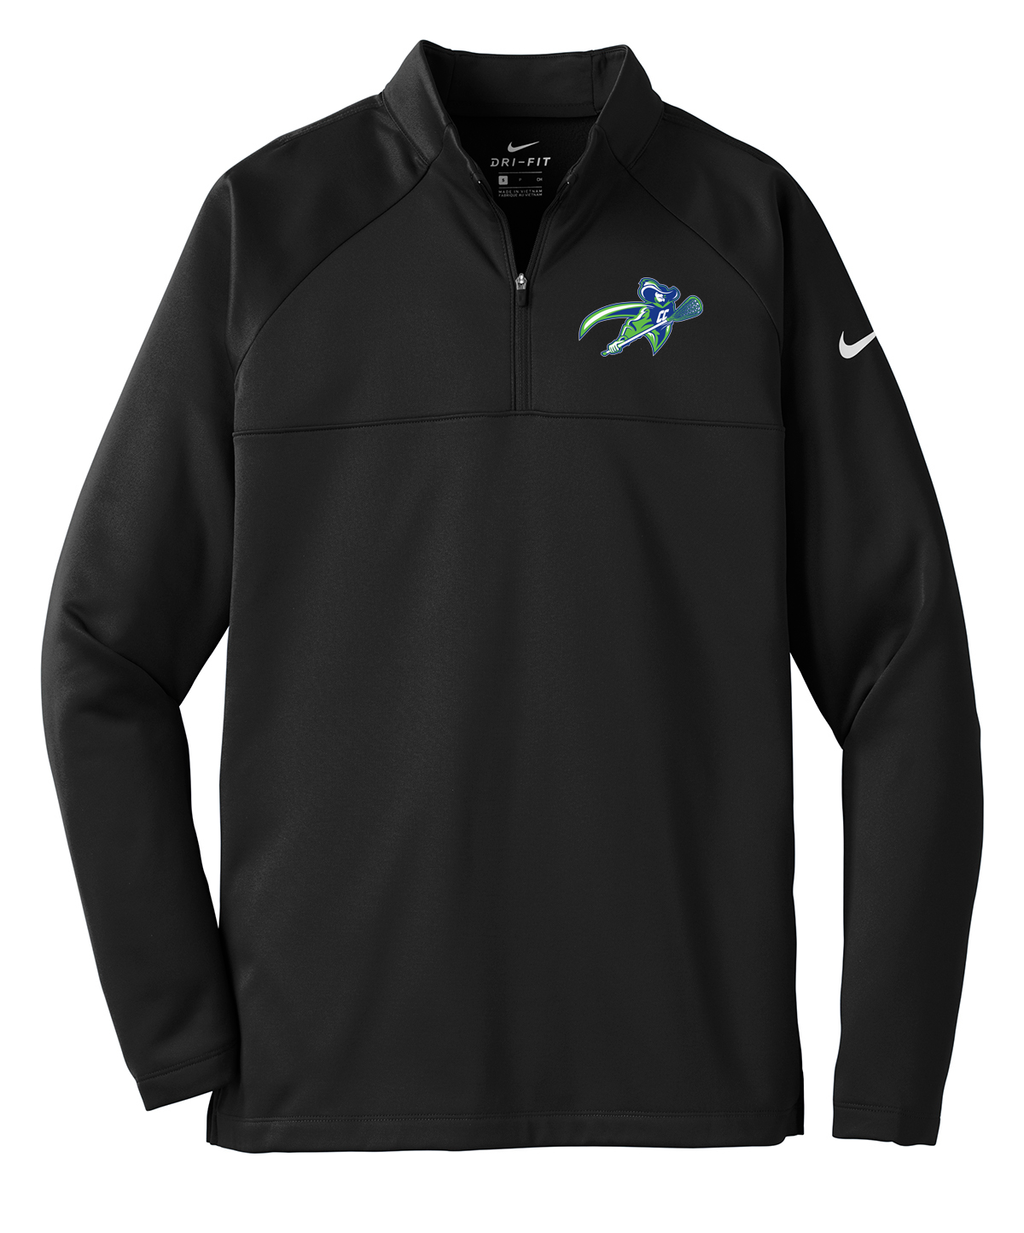 Cavaliers Lacrosse Nike Therma-FIT Fleece